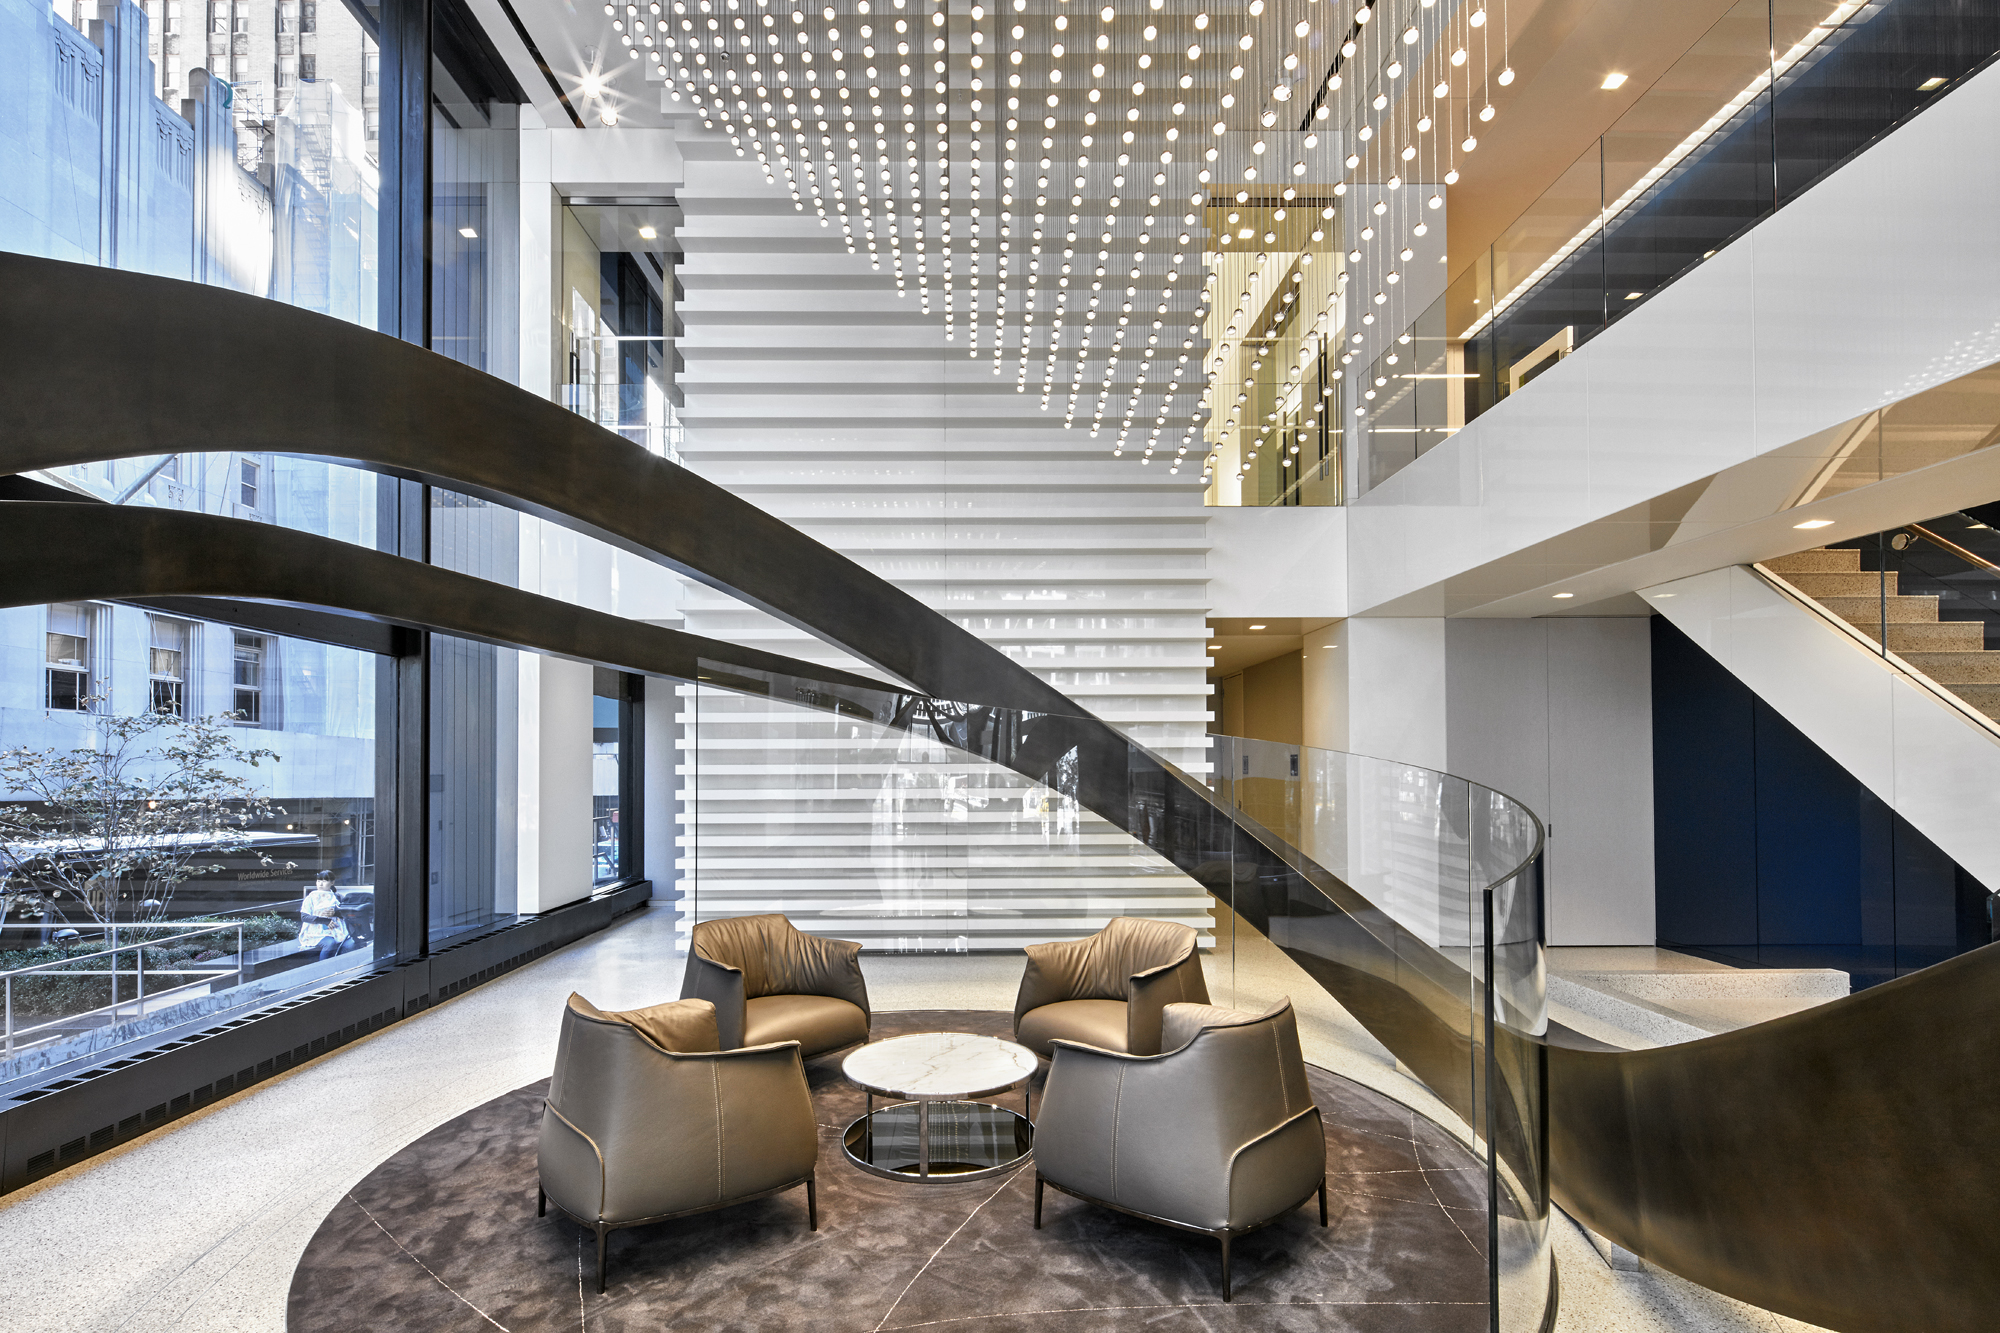 Flos Acquires Lukas Lighting Architectural Lighting Magazine Business Li